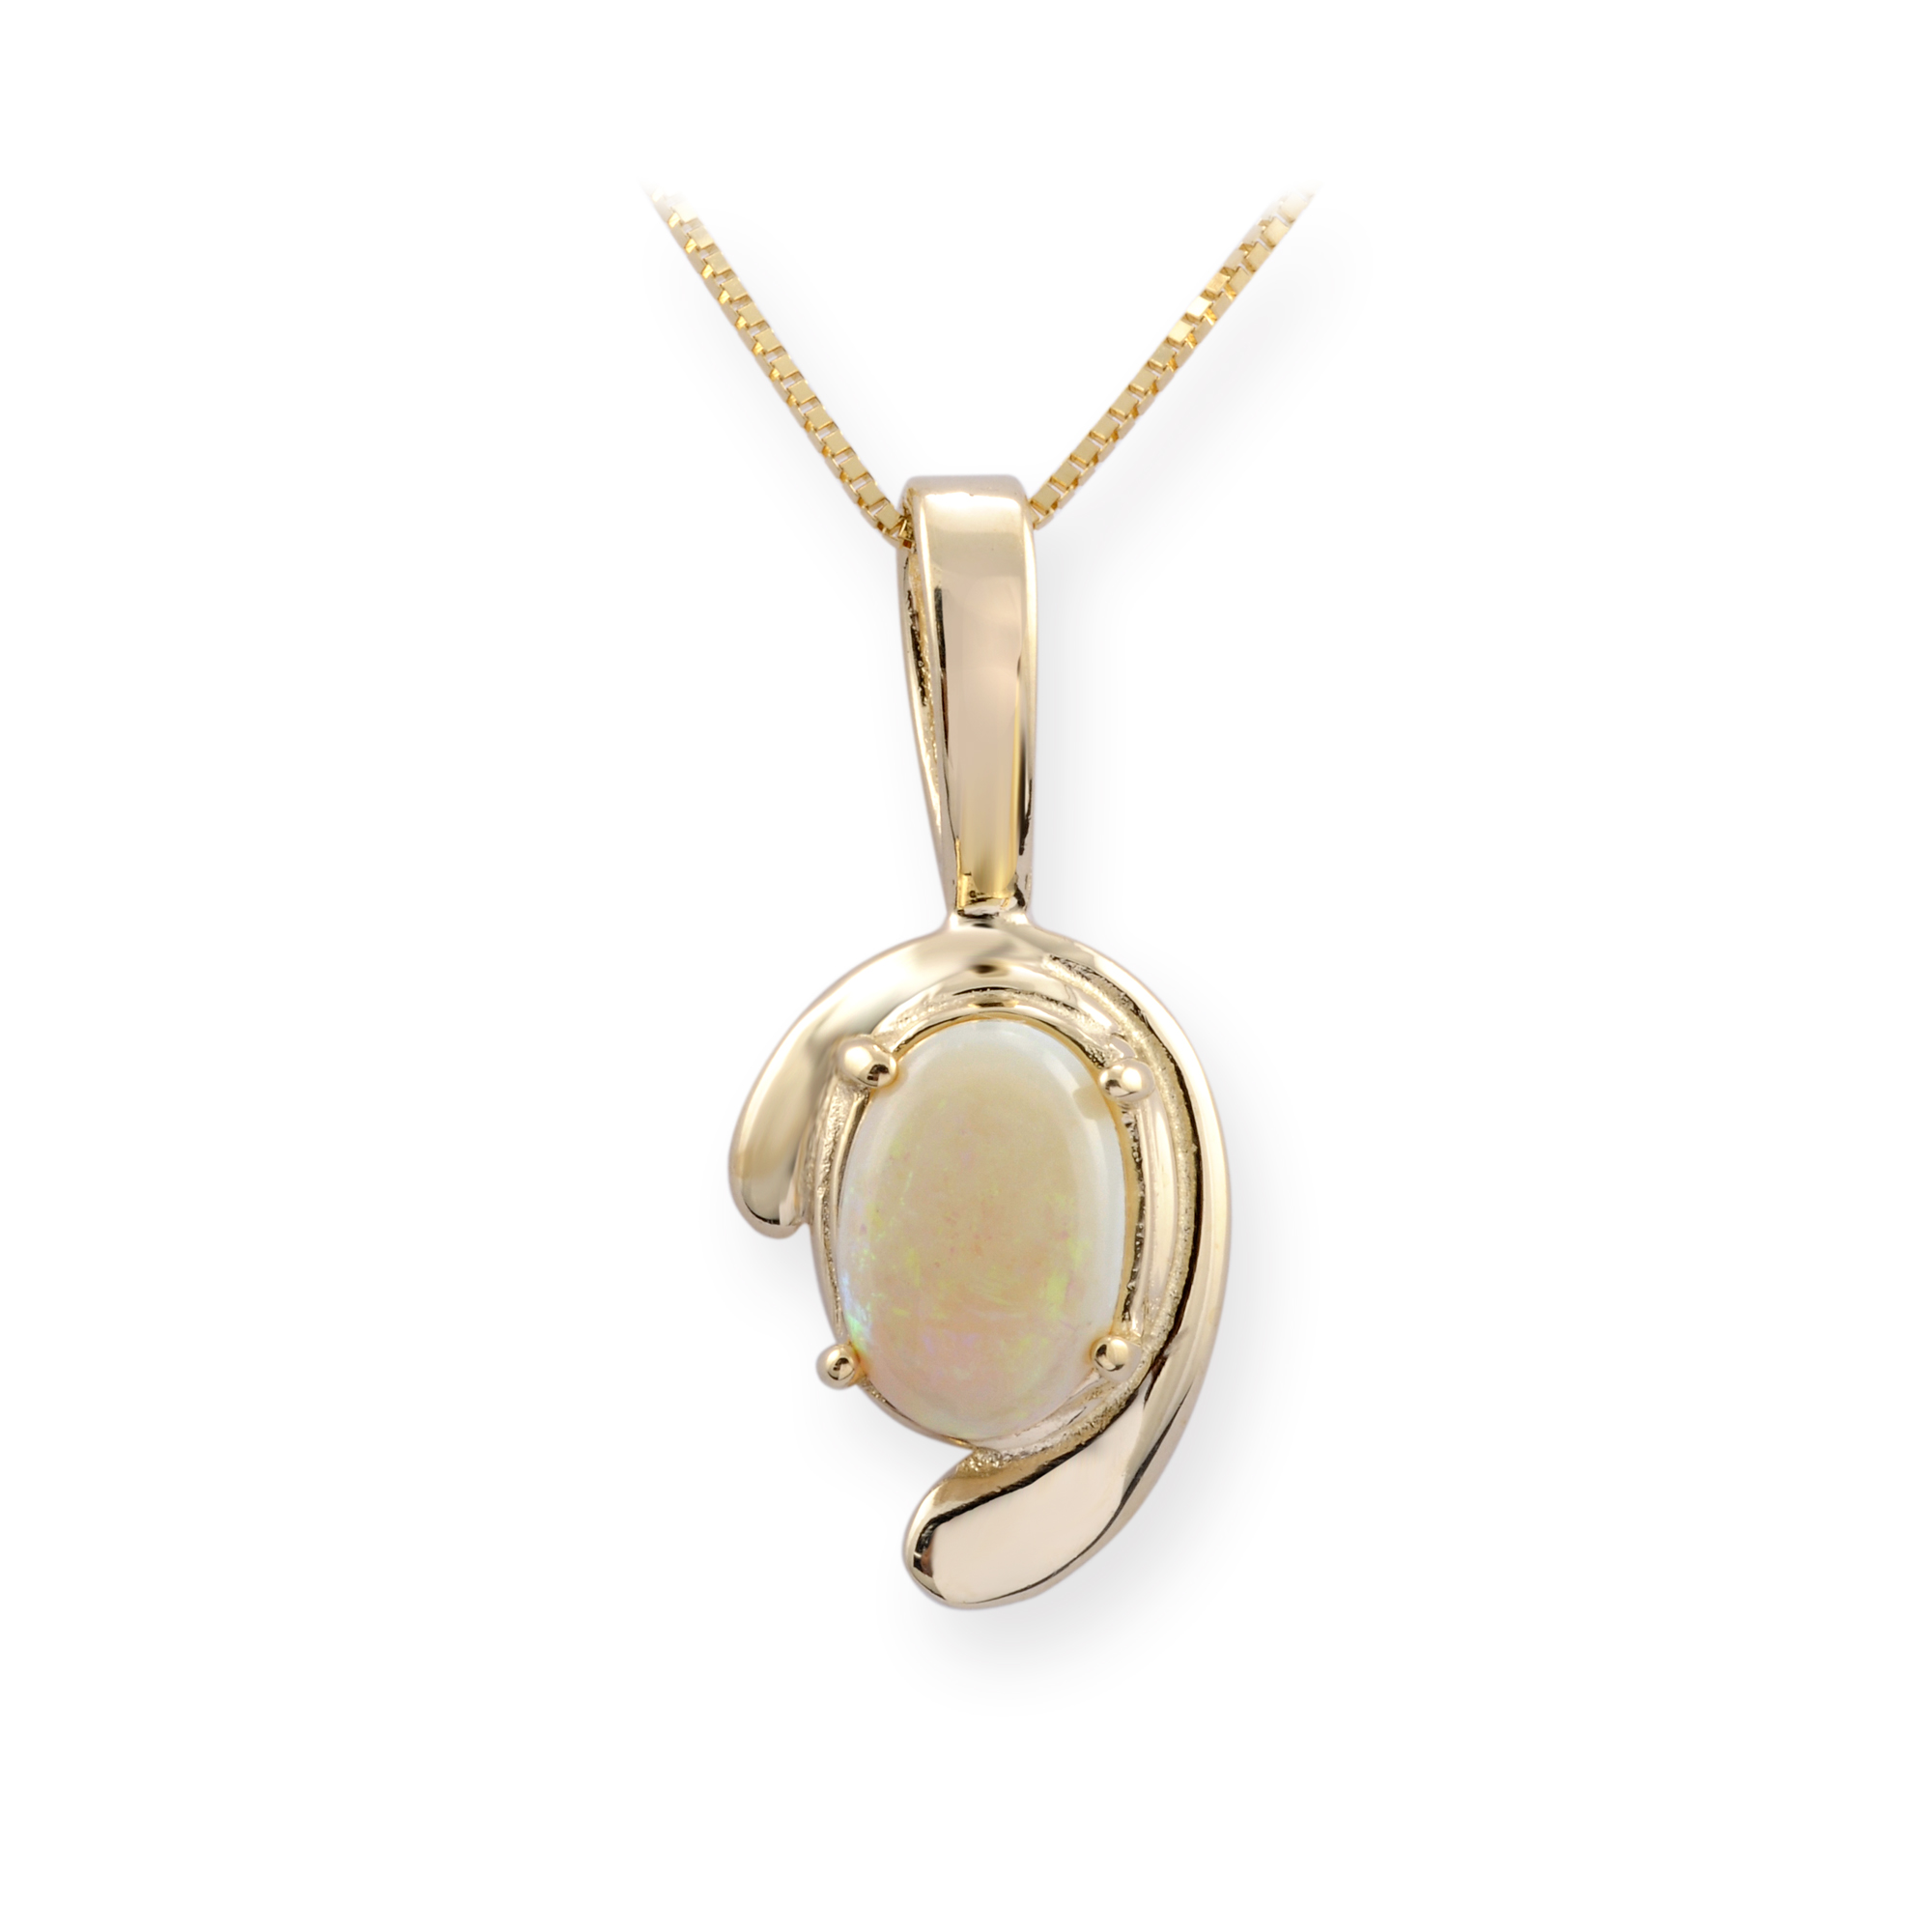 Pendant for women - 10K yellow Gold & Opal